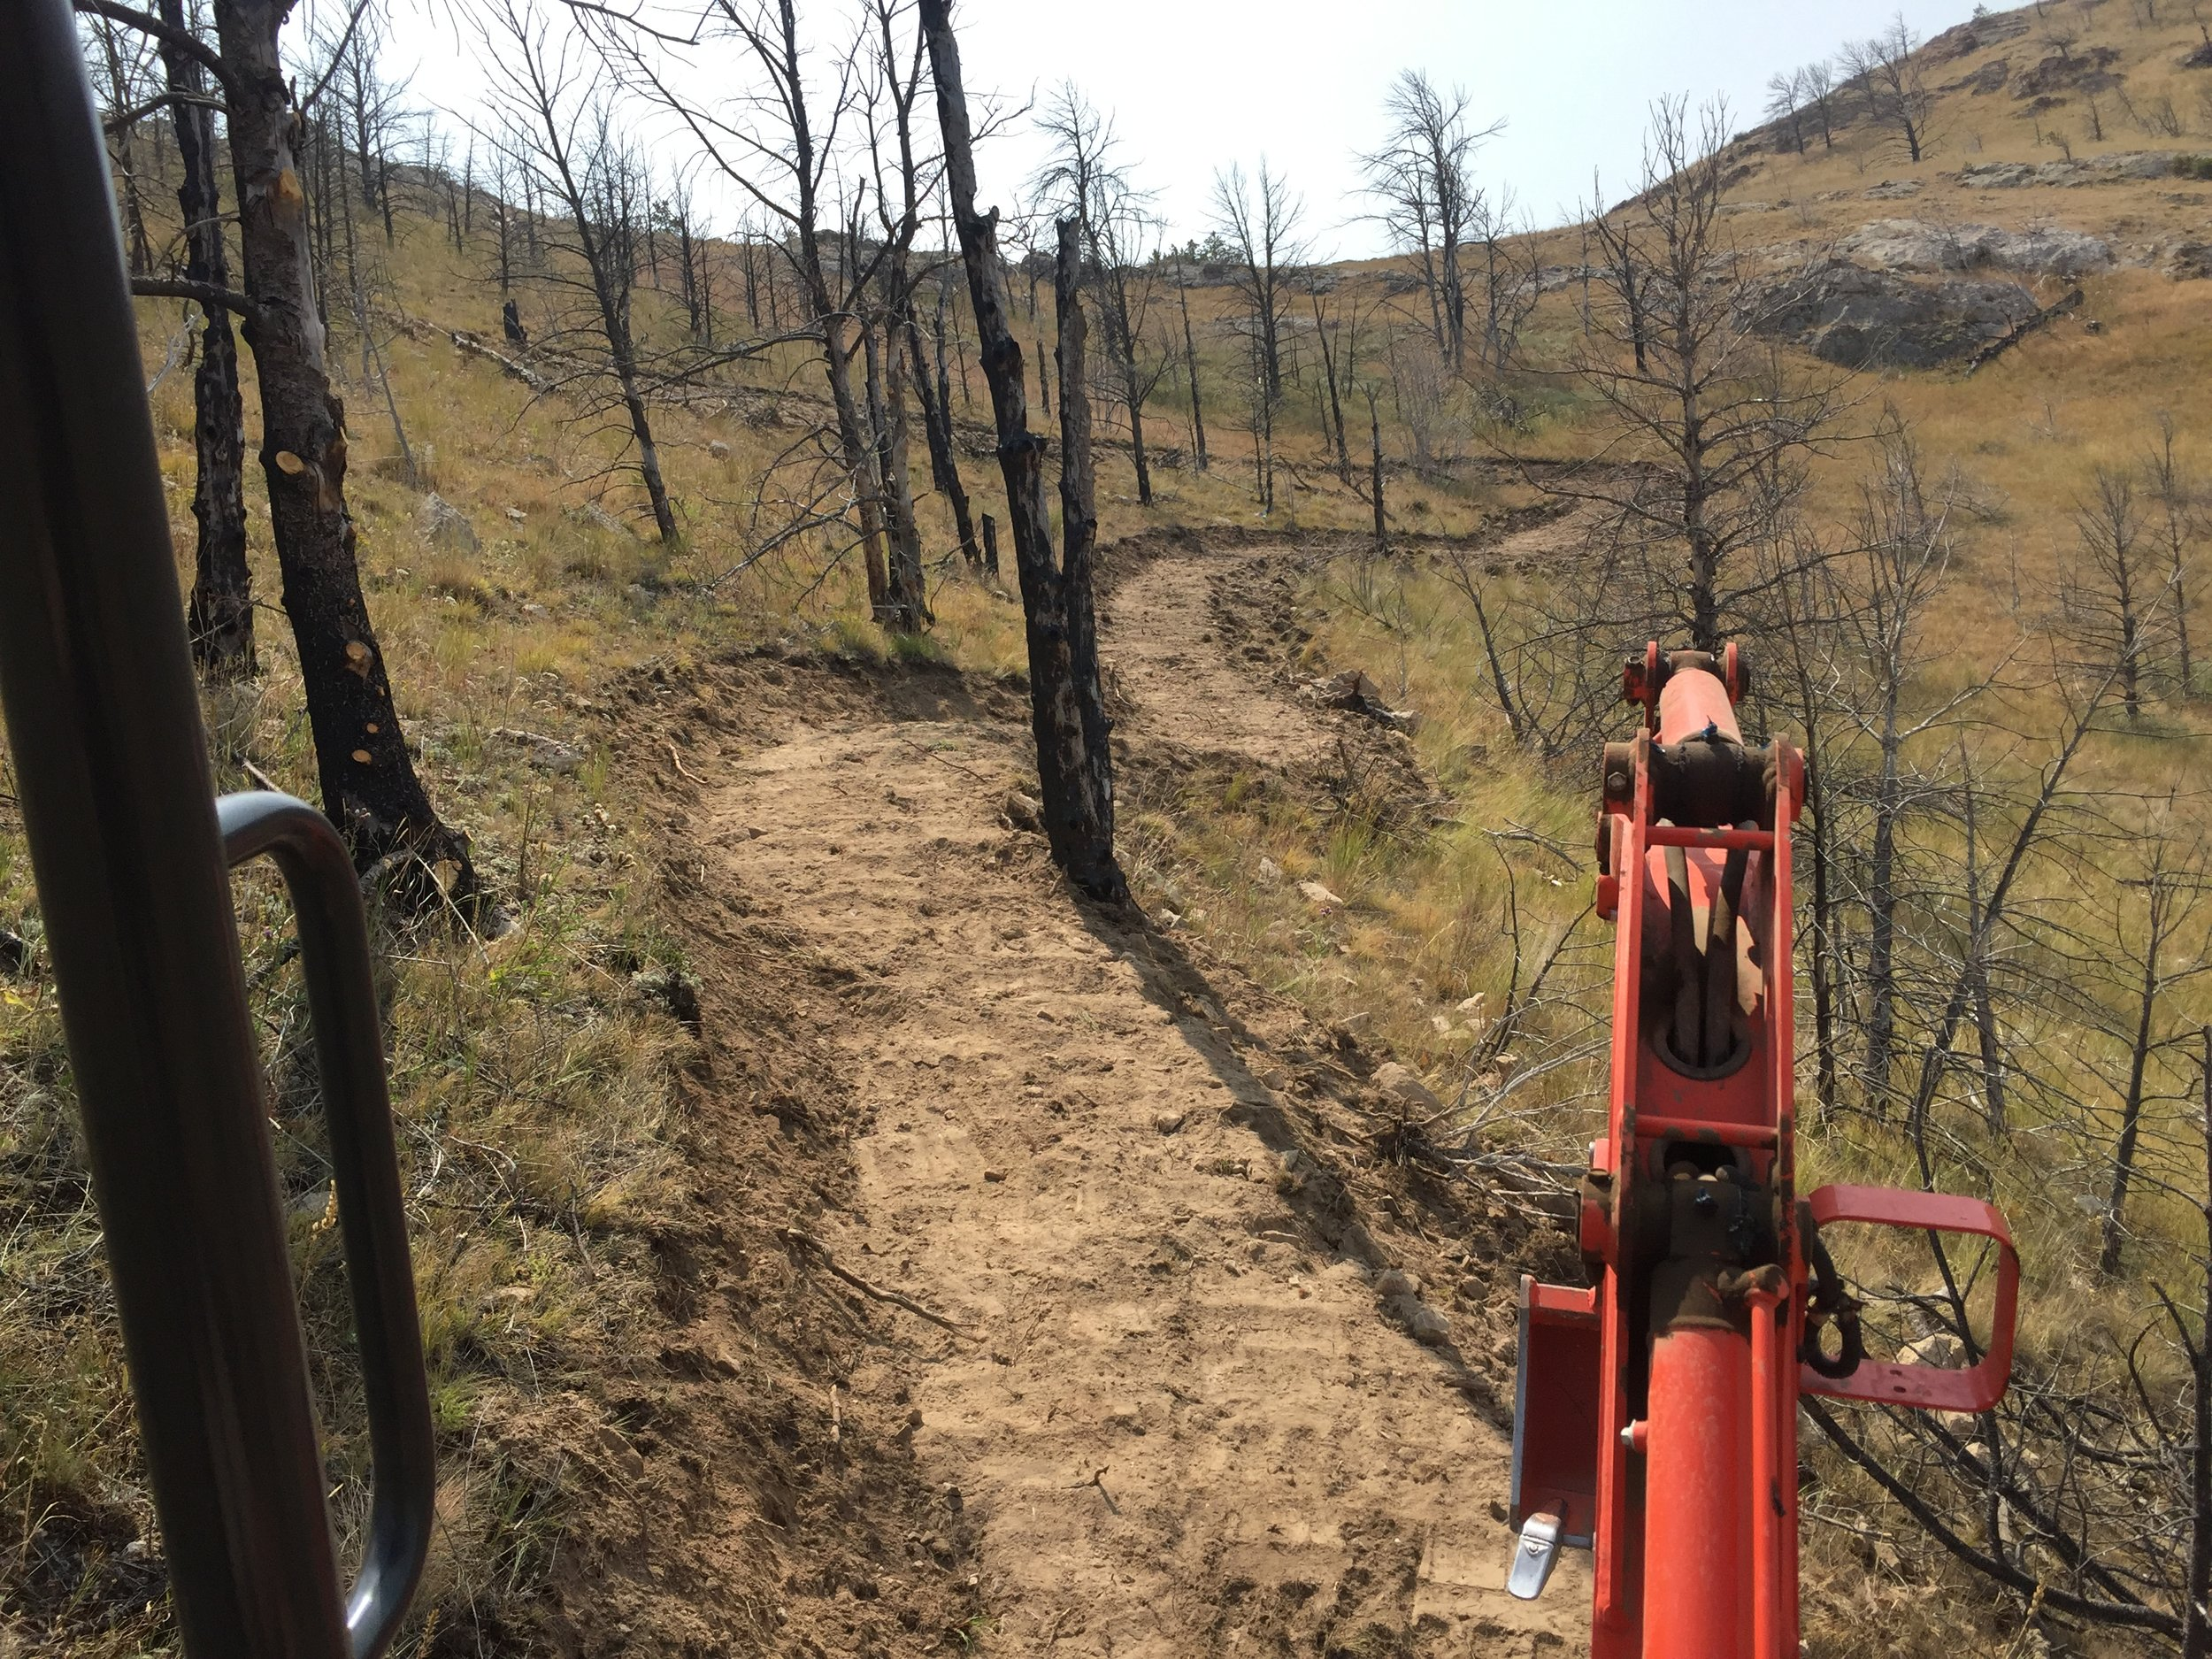 Mother Lode trail being built .Copper city ,MT